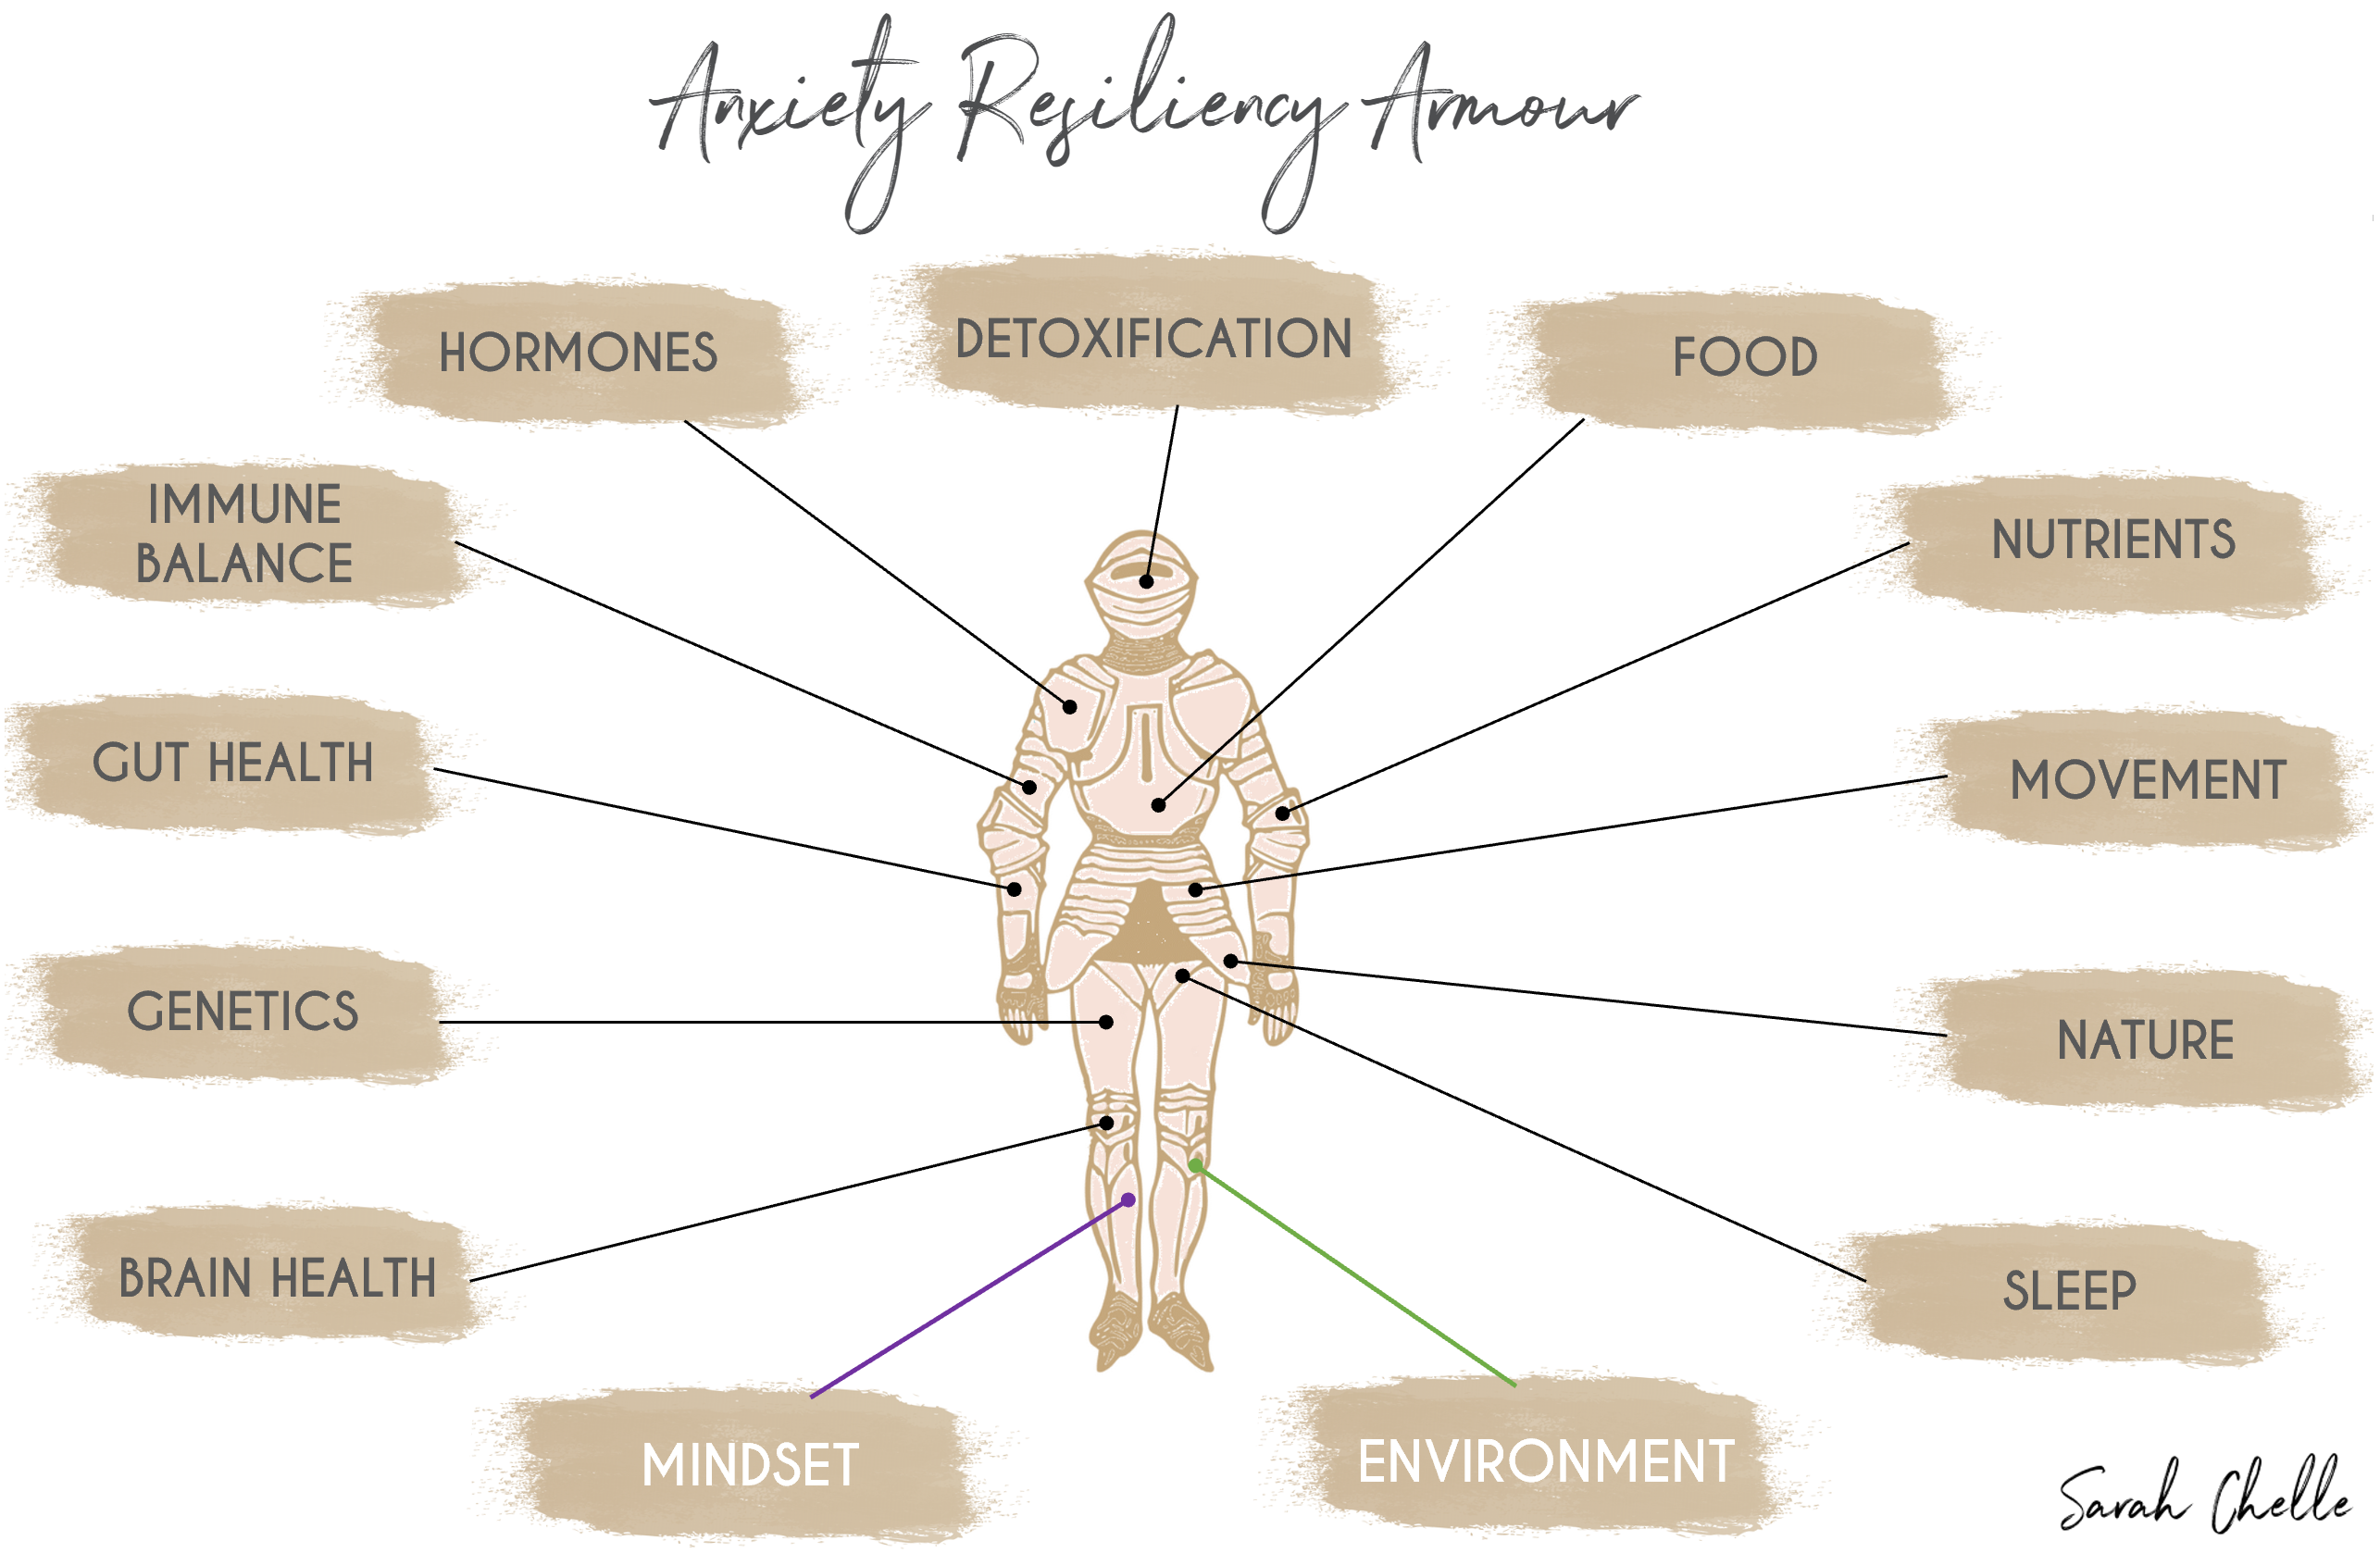 Anxiety resiliency armour